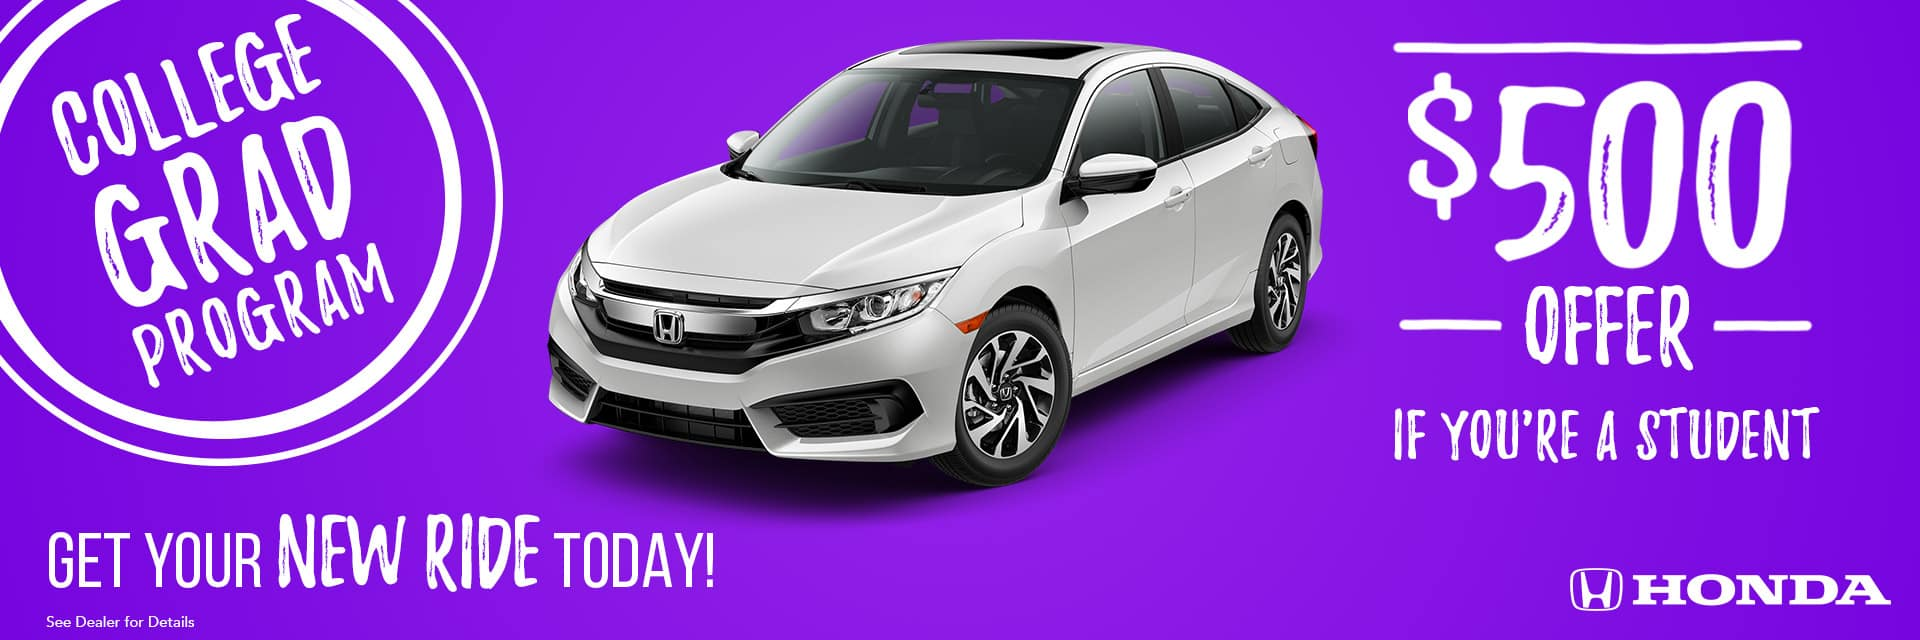 Exceptional Apple Tree Honda | New And Used Honda Dealer In Fletcher, NC